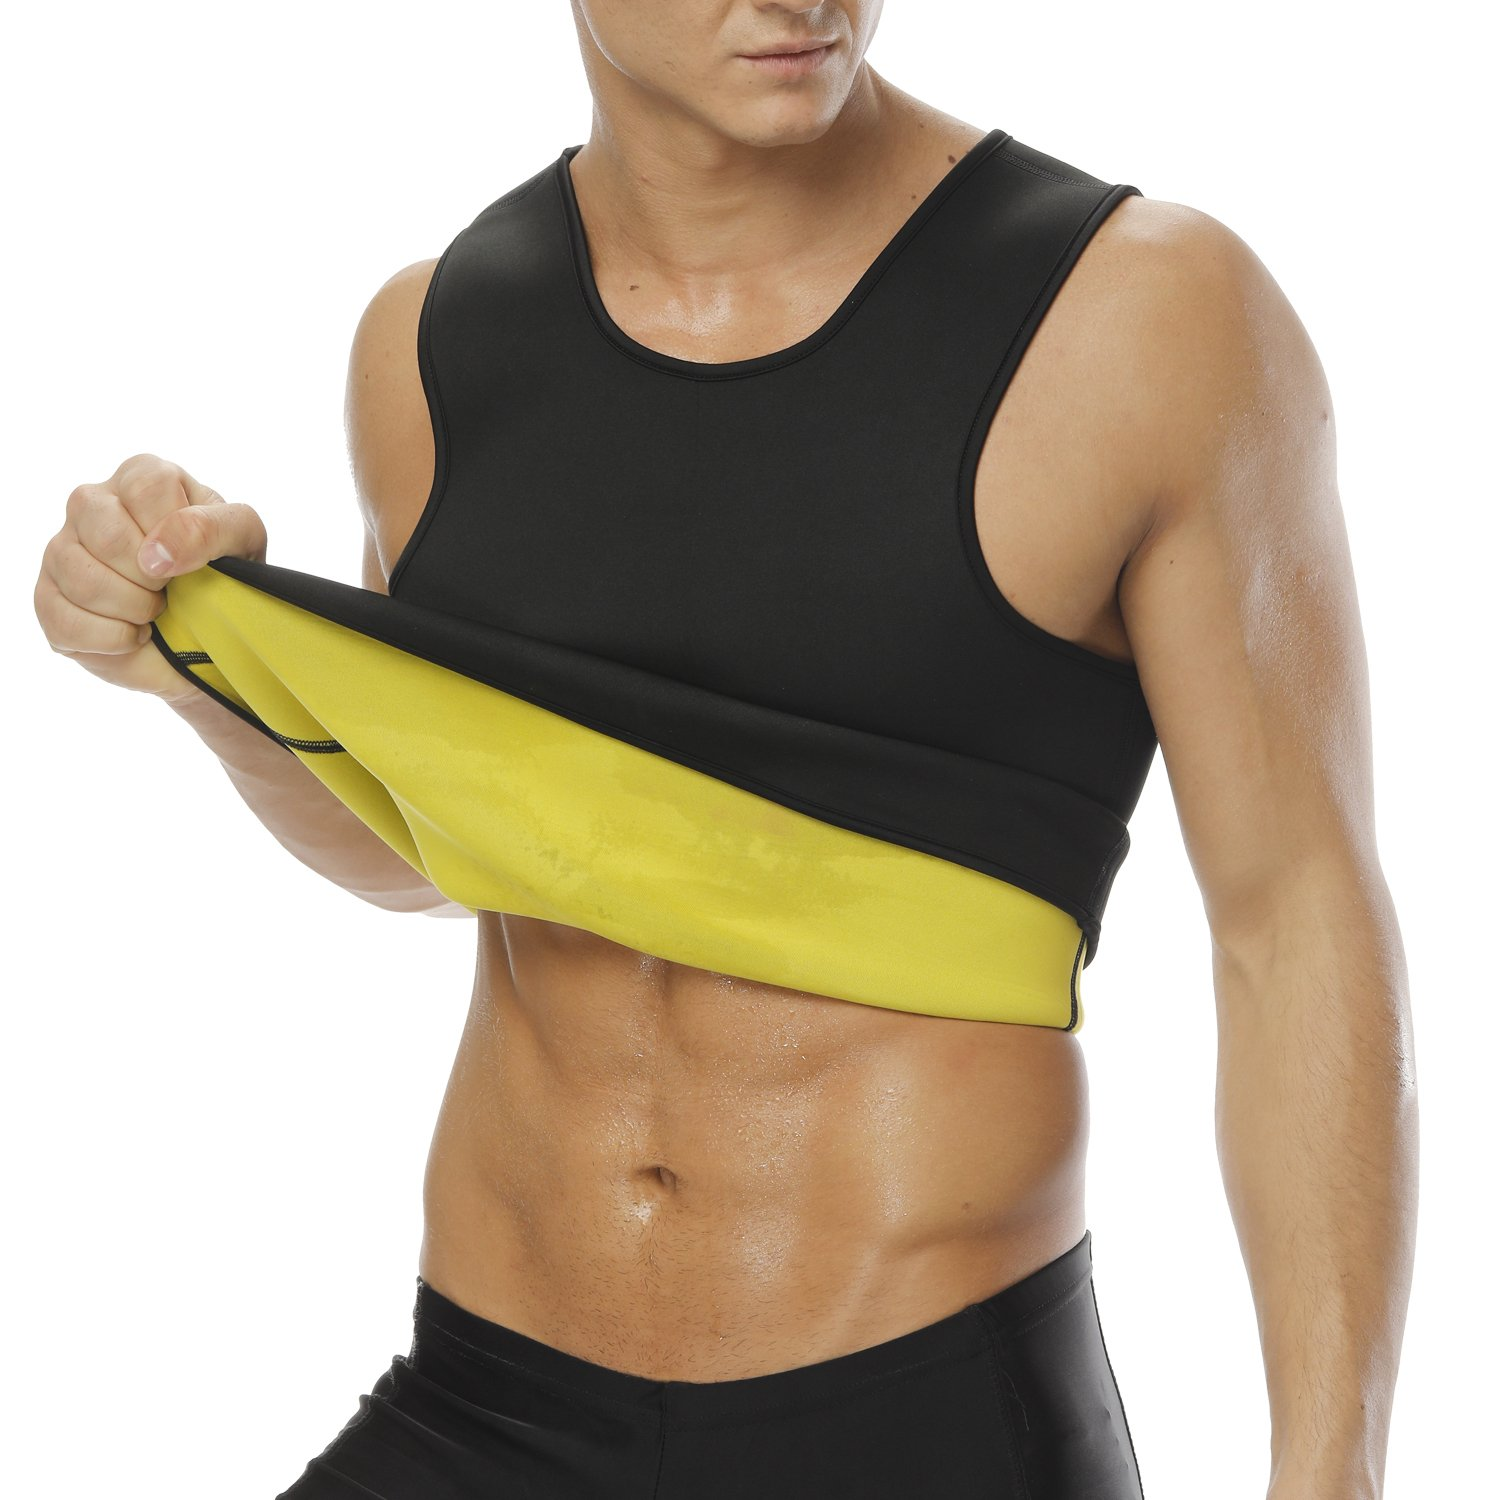 35151fd71b1 Men s Hot Sweat Slimming Neoprene Shirt Vest Body Shapers For Weight Loss  No Zipper Black  Amazon.com.au  Fashion